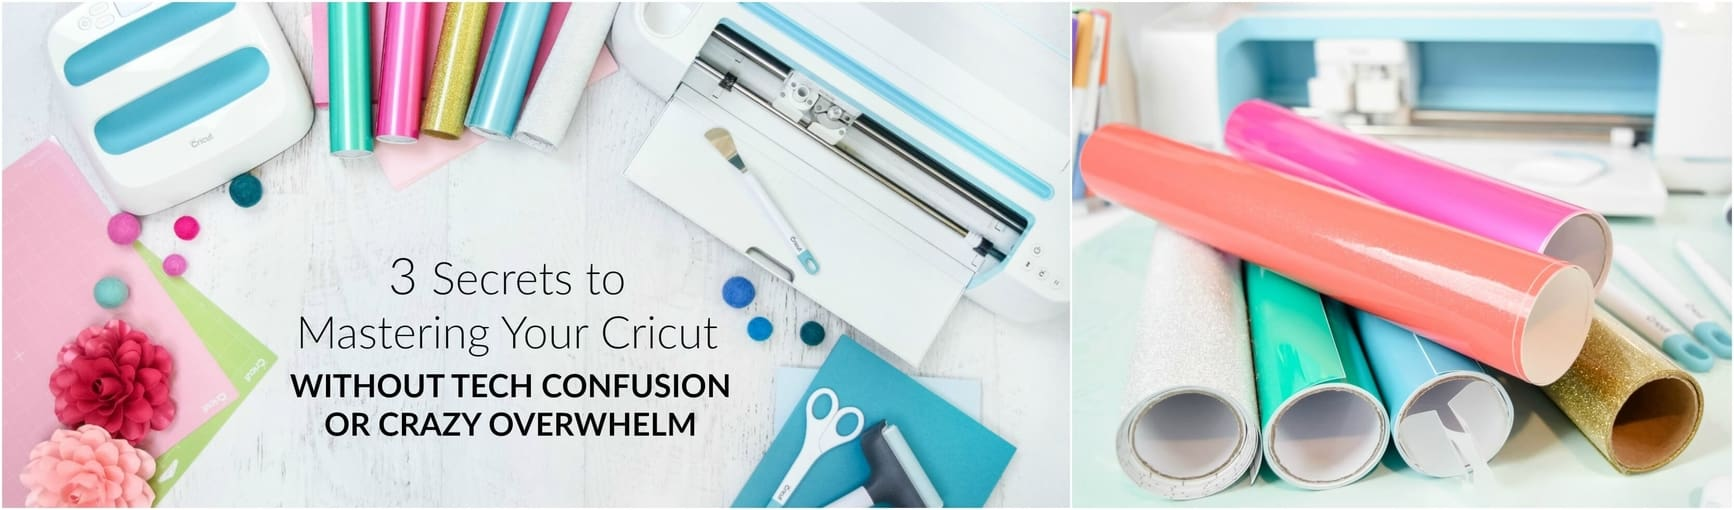 Mastering your Cricut call-to-action